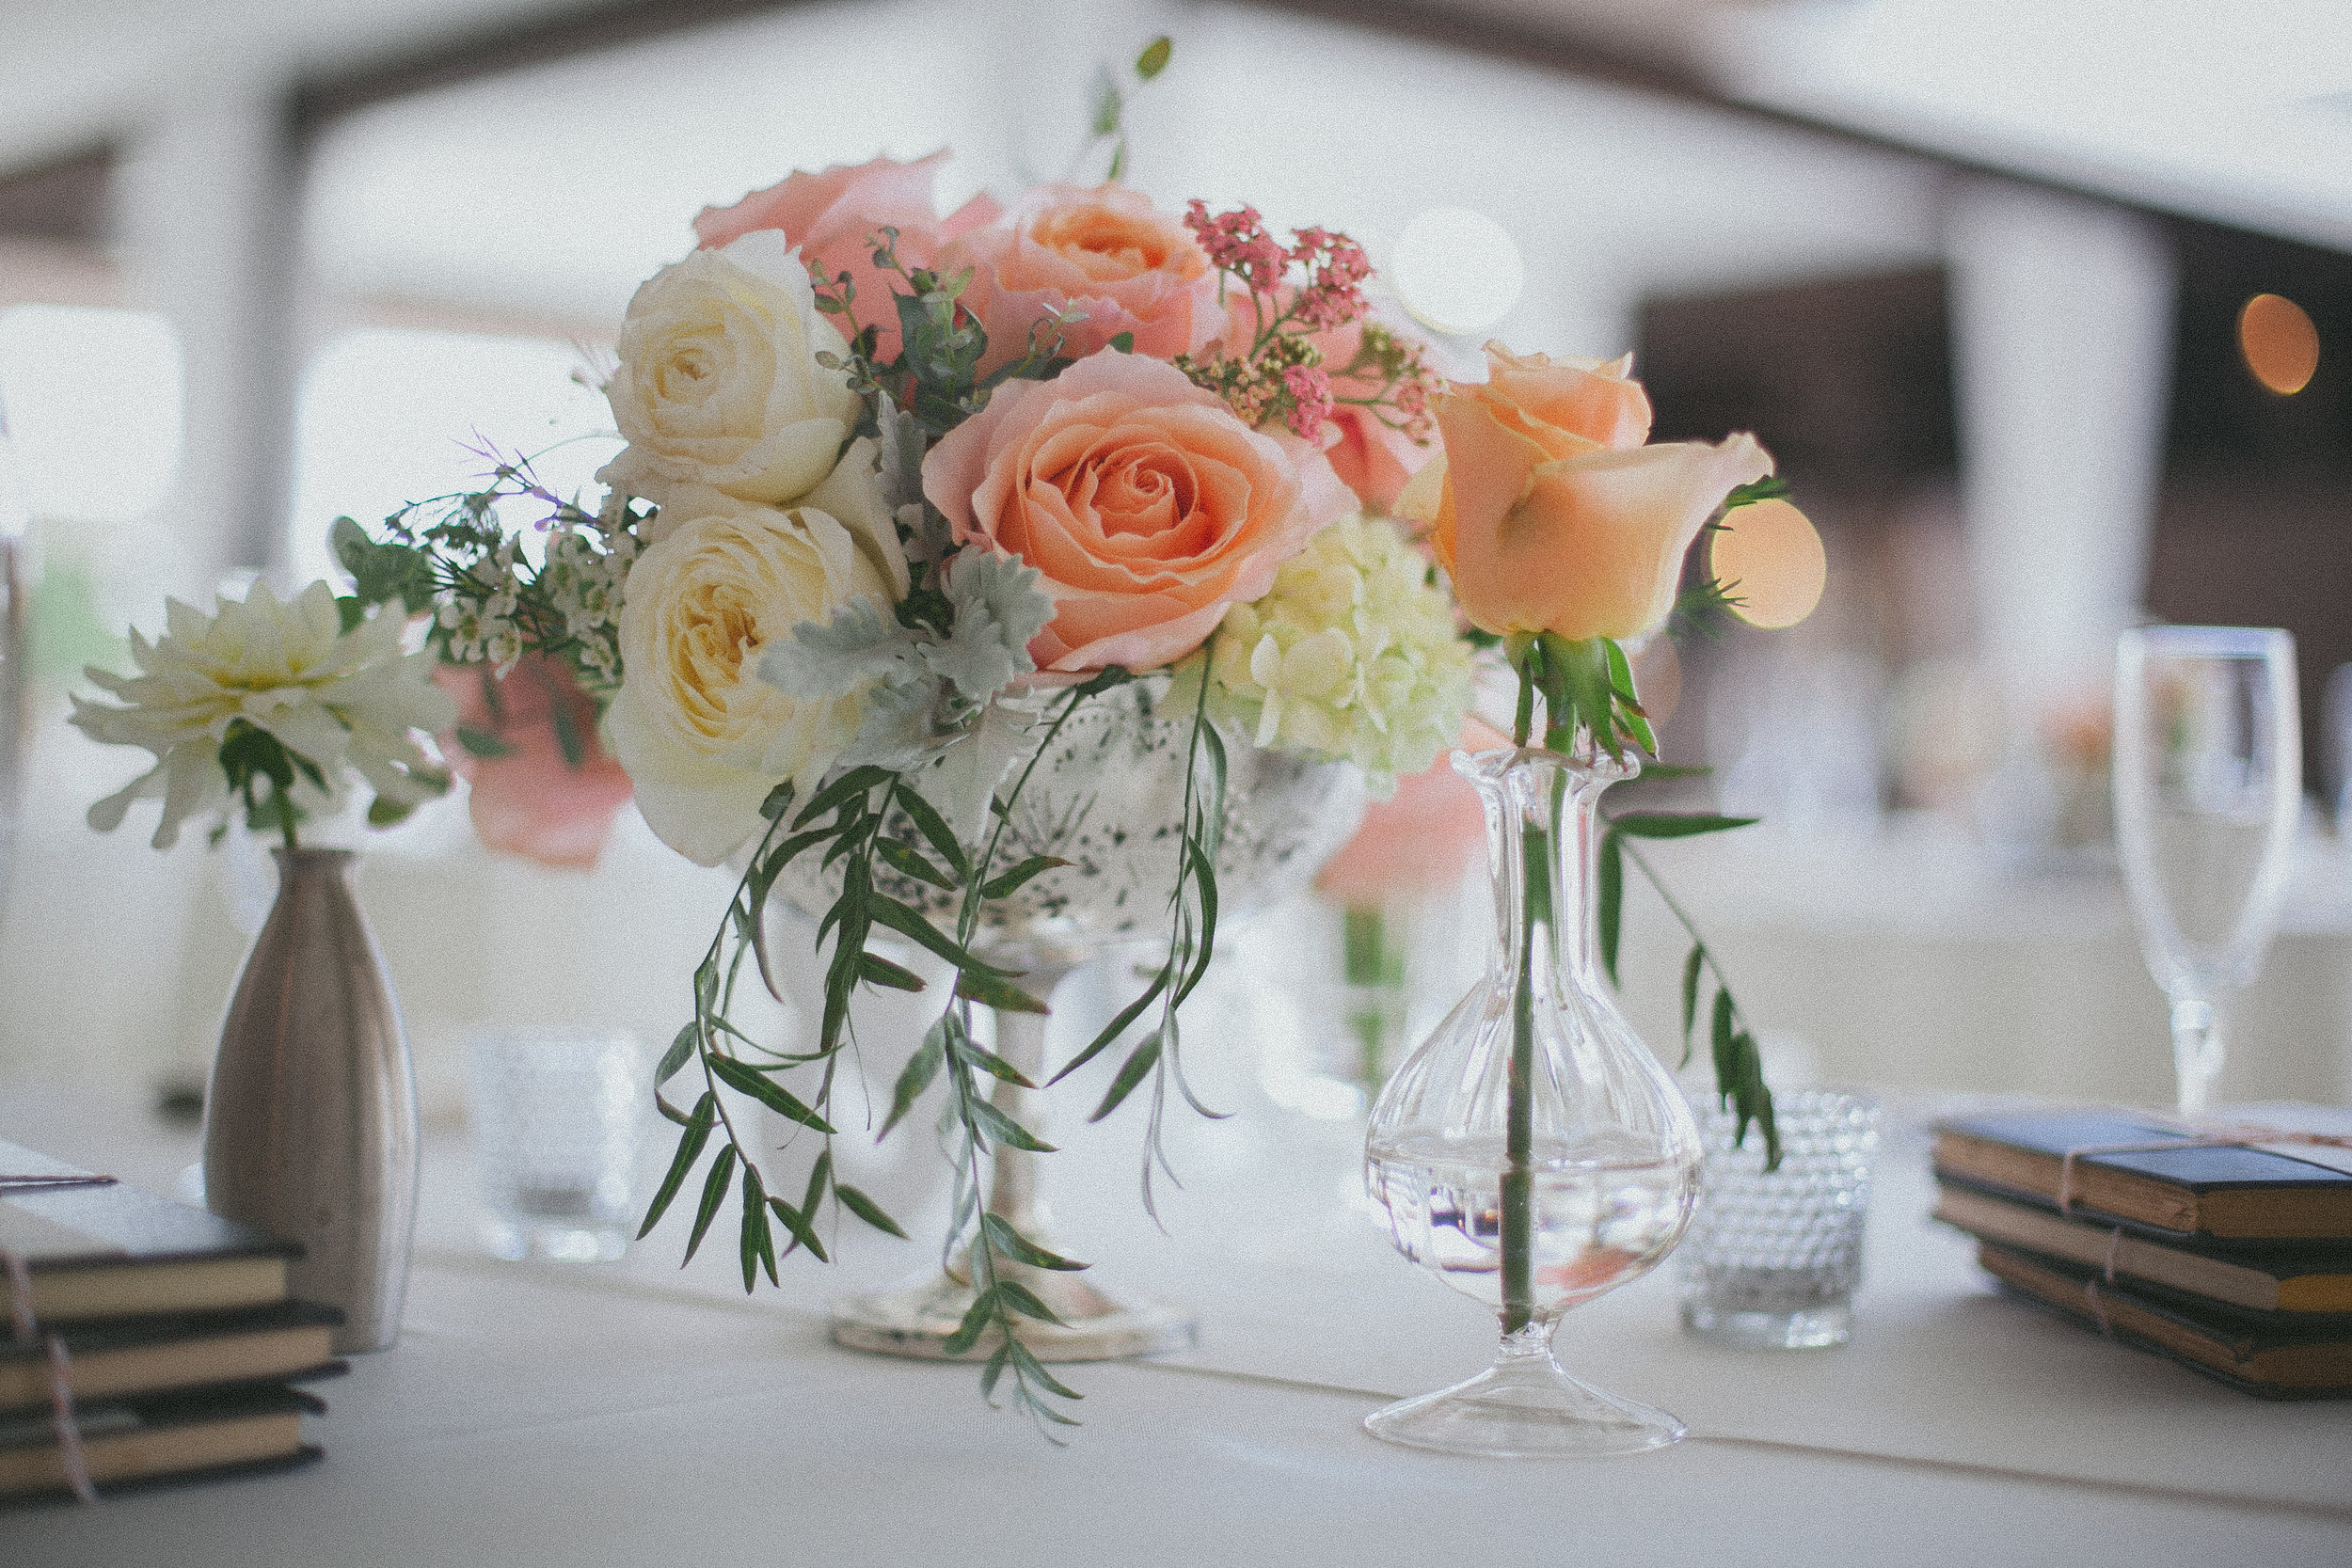 Photo by One Love Photo, Flowers by Christopher Flowers